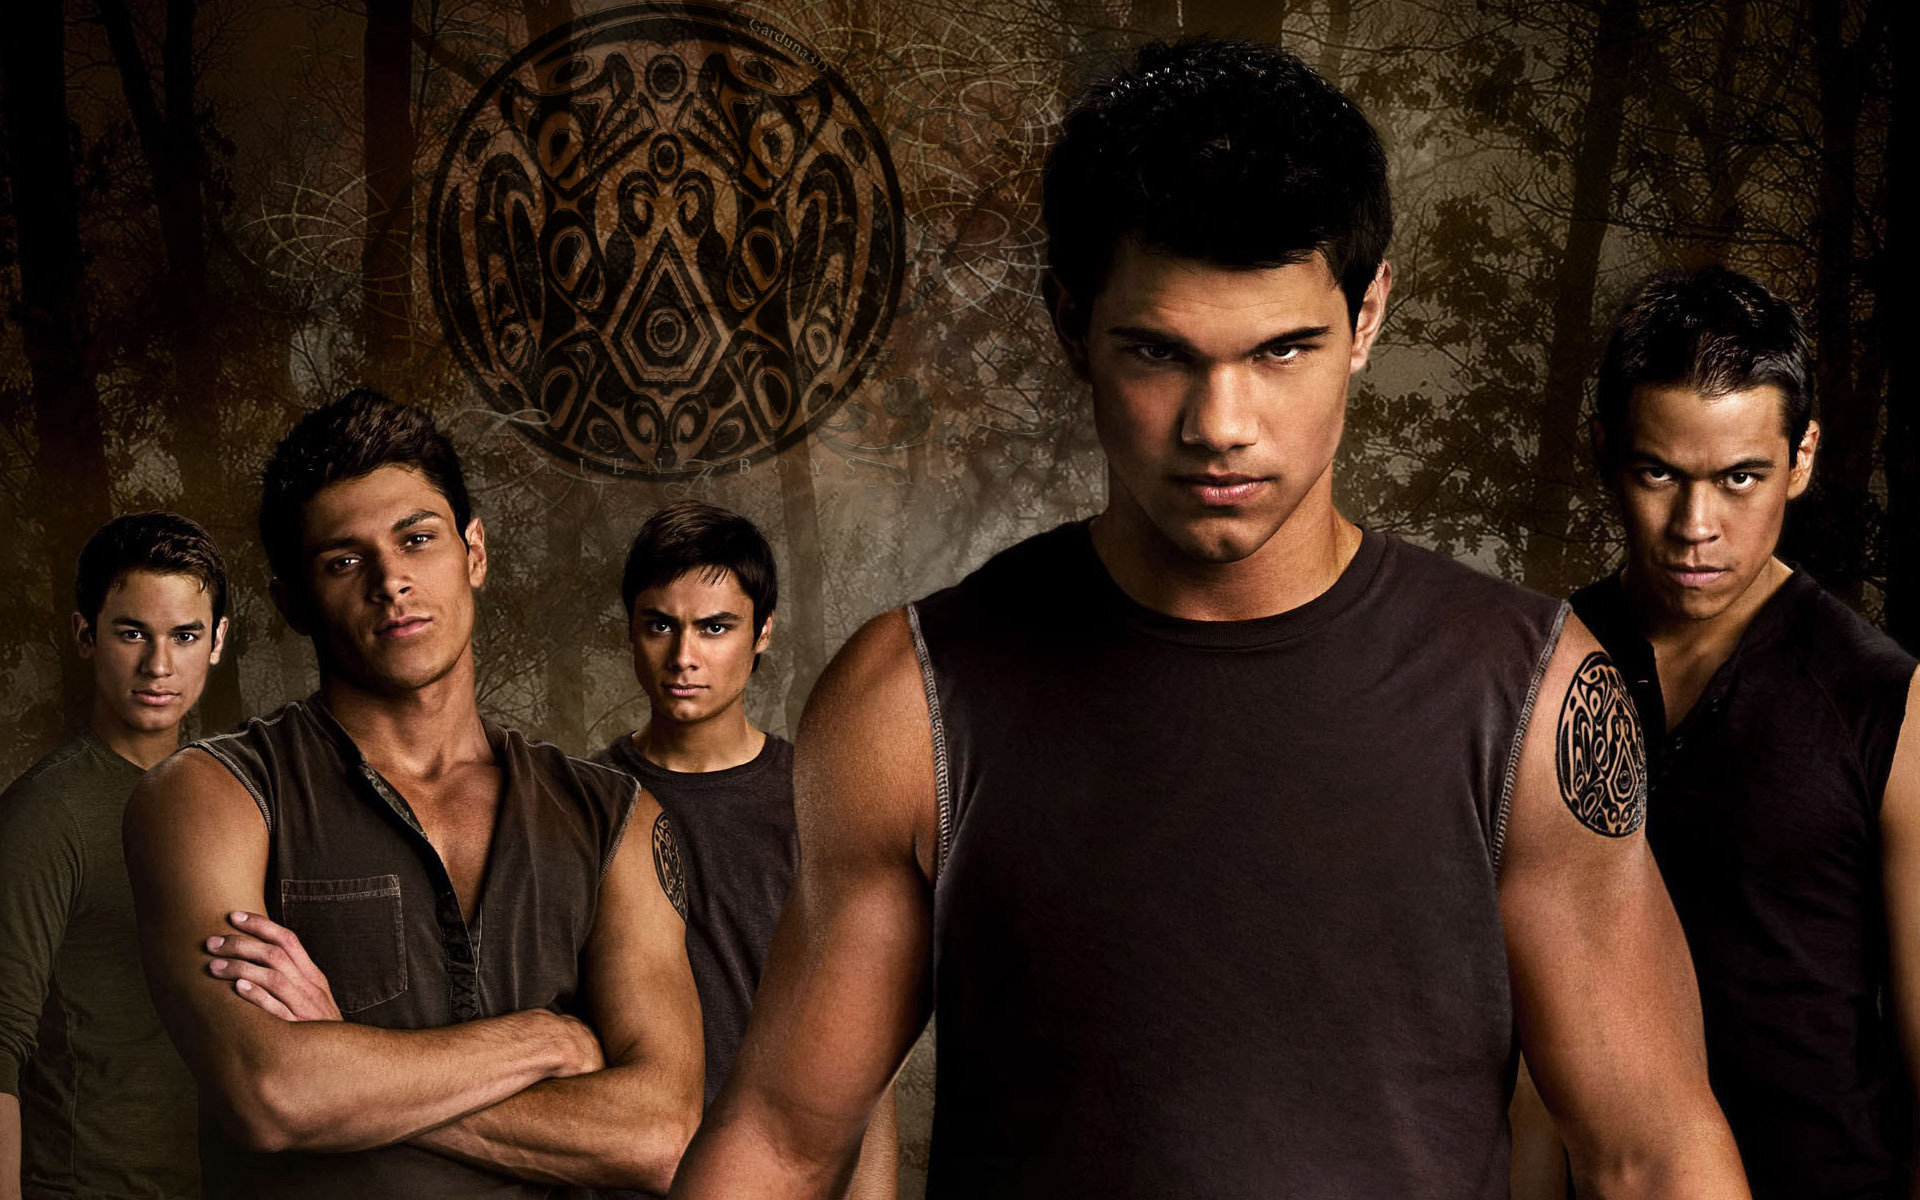 download Jacob Black Wallpaper twilight movie photo HD 1920x1200